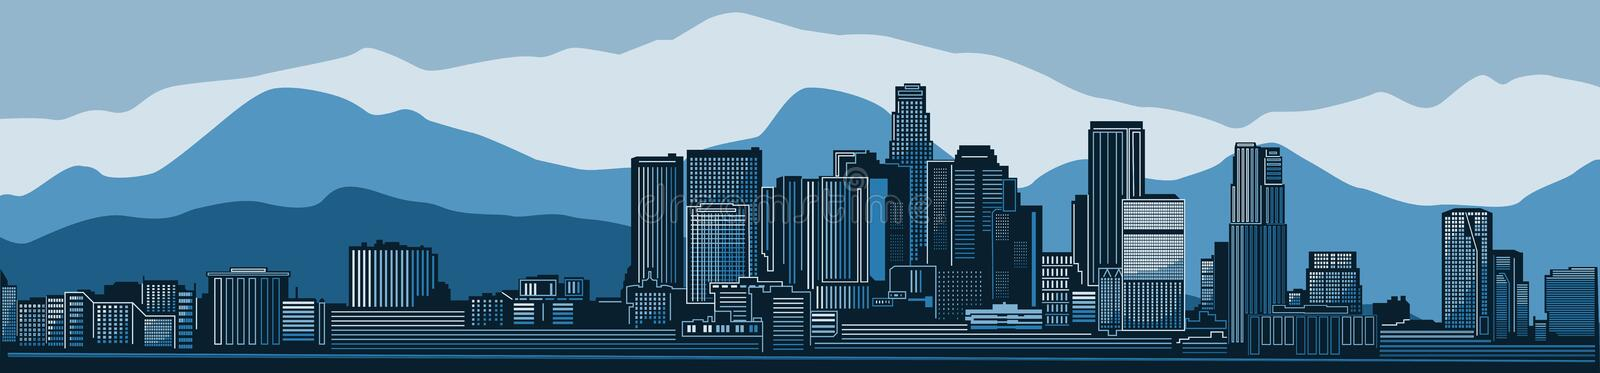 Los Angeles city skyline detailed silhouette. Vector illustration. Los Angeles city skyline vector illustration mountains background. Blue winter scene royalty free illustration